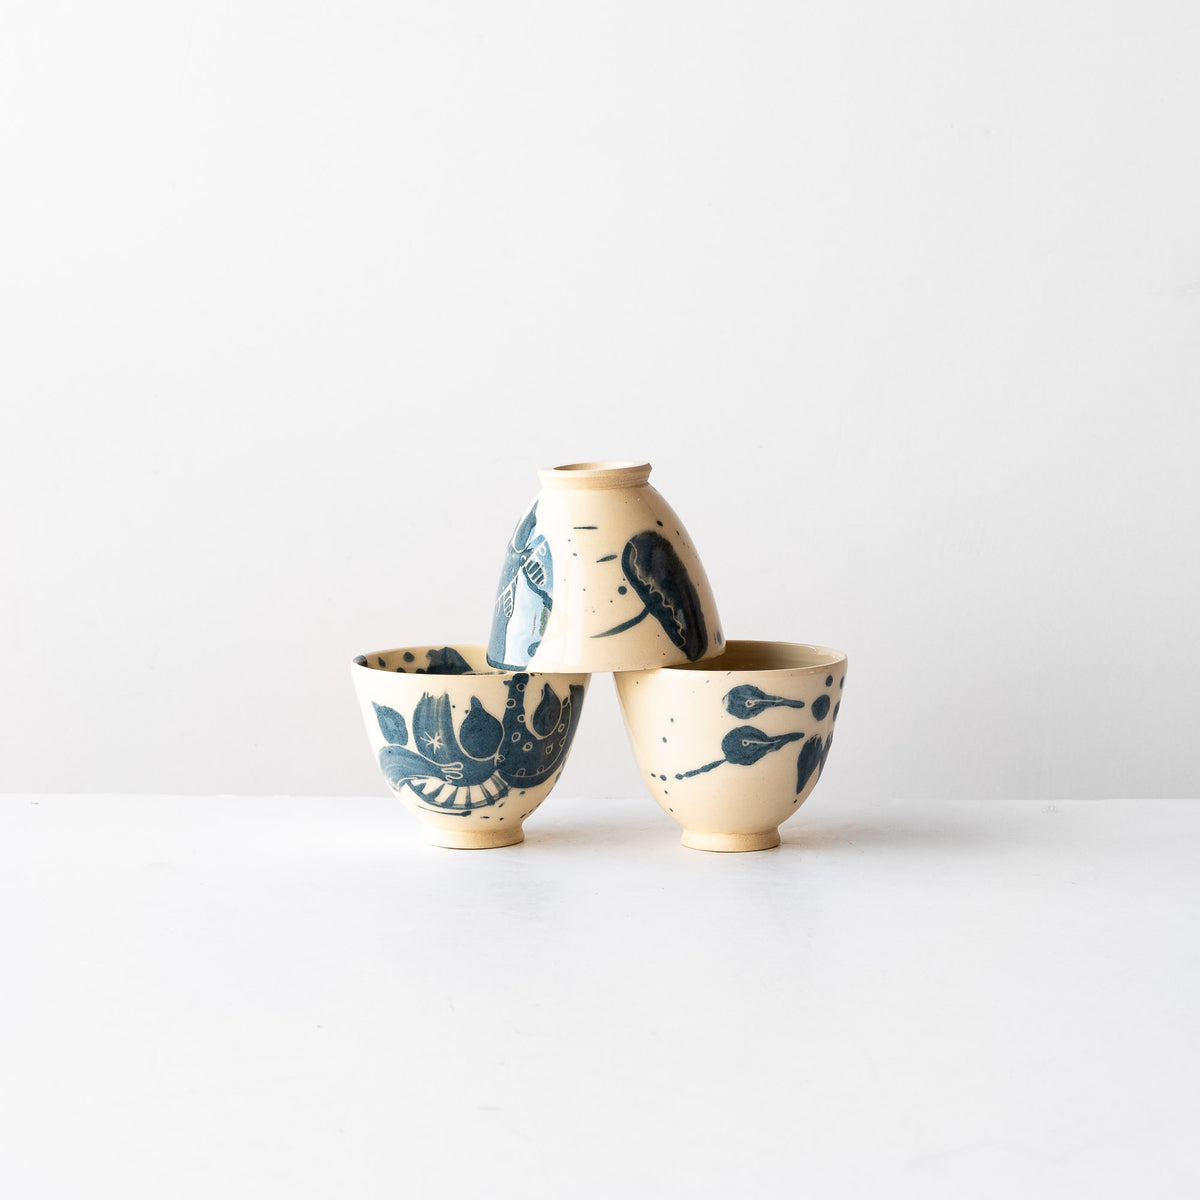 Three Blue Little Hand Painted Earthenware Bowls - Sold by Chic & Basta